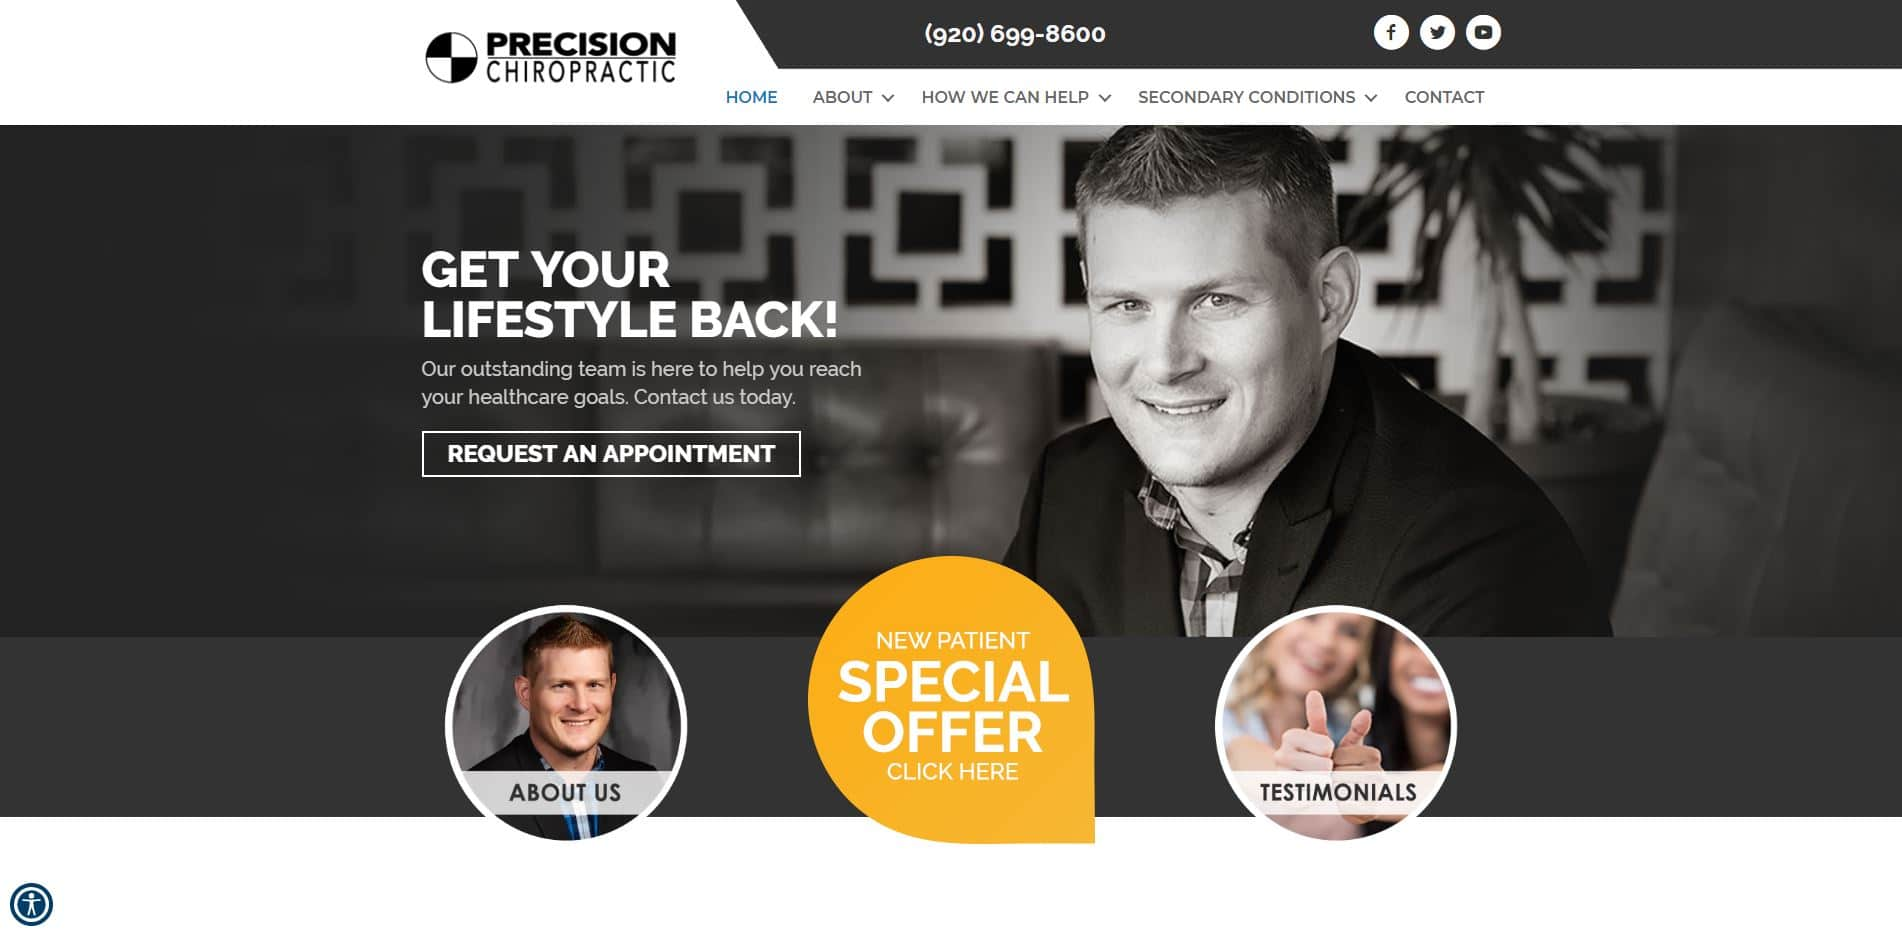 Chiropractor in Johnson Creek